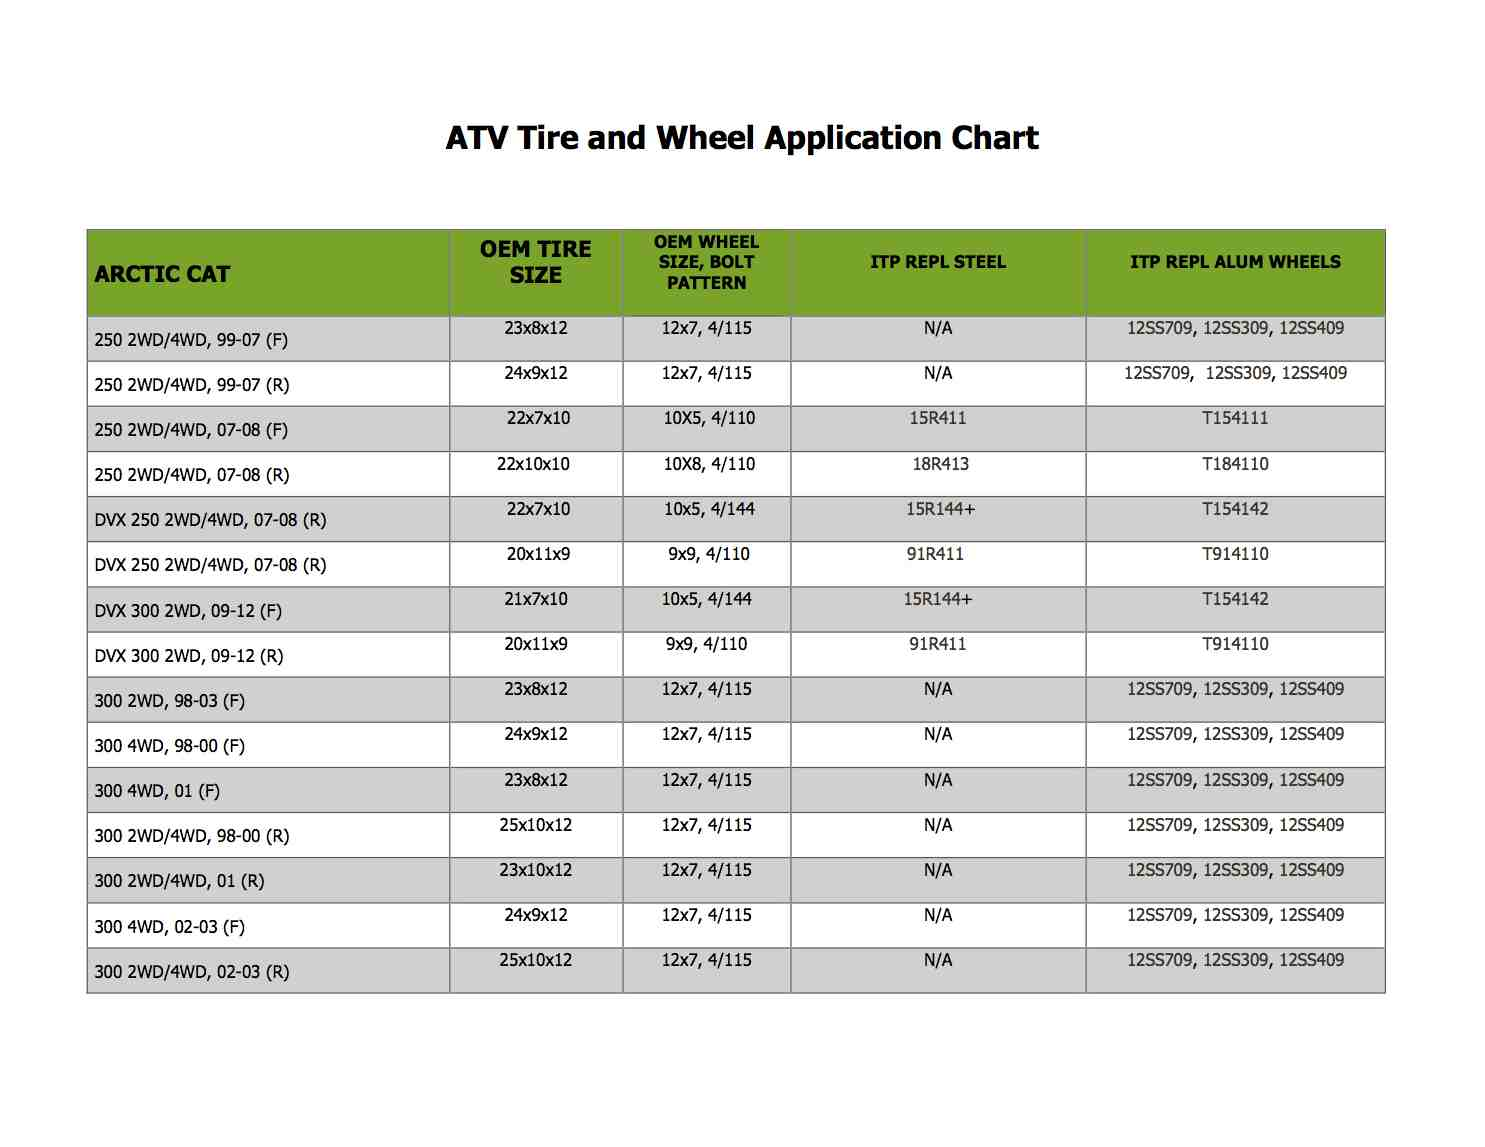 Atv tire and wheel application chart suzuki z400 forum z400 forums